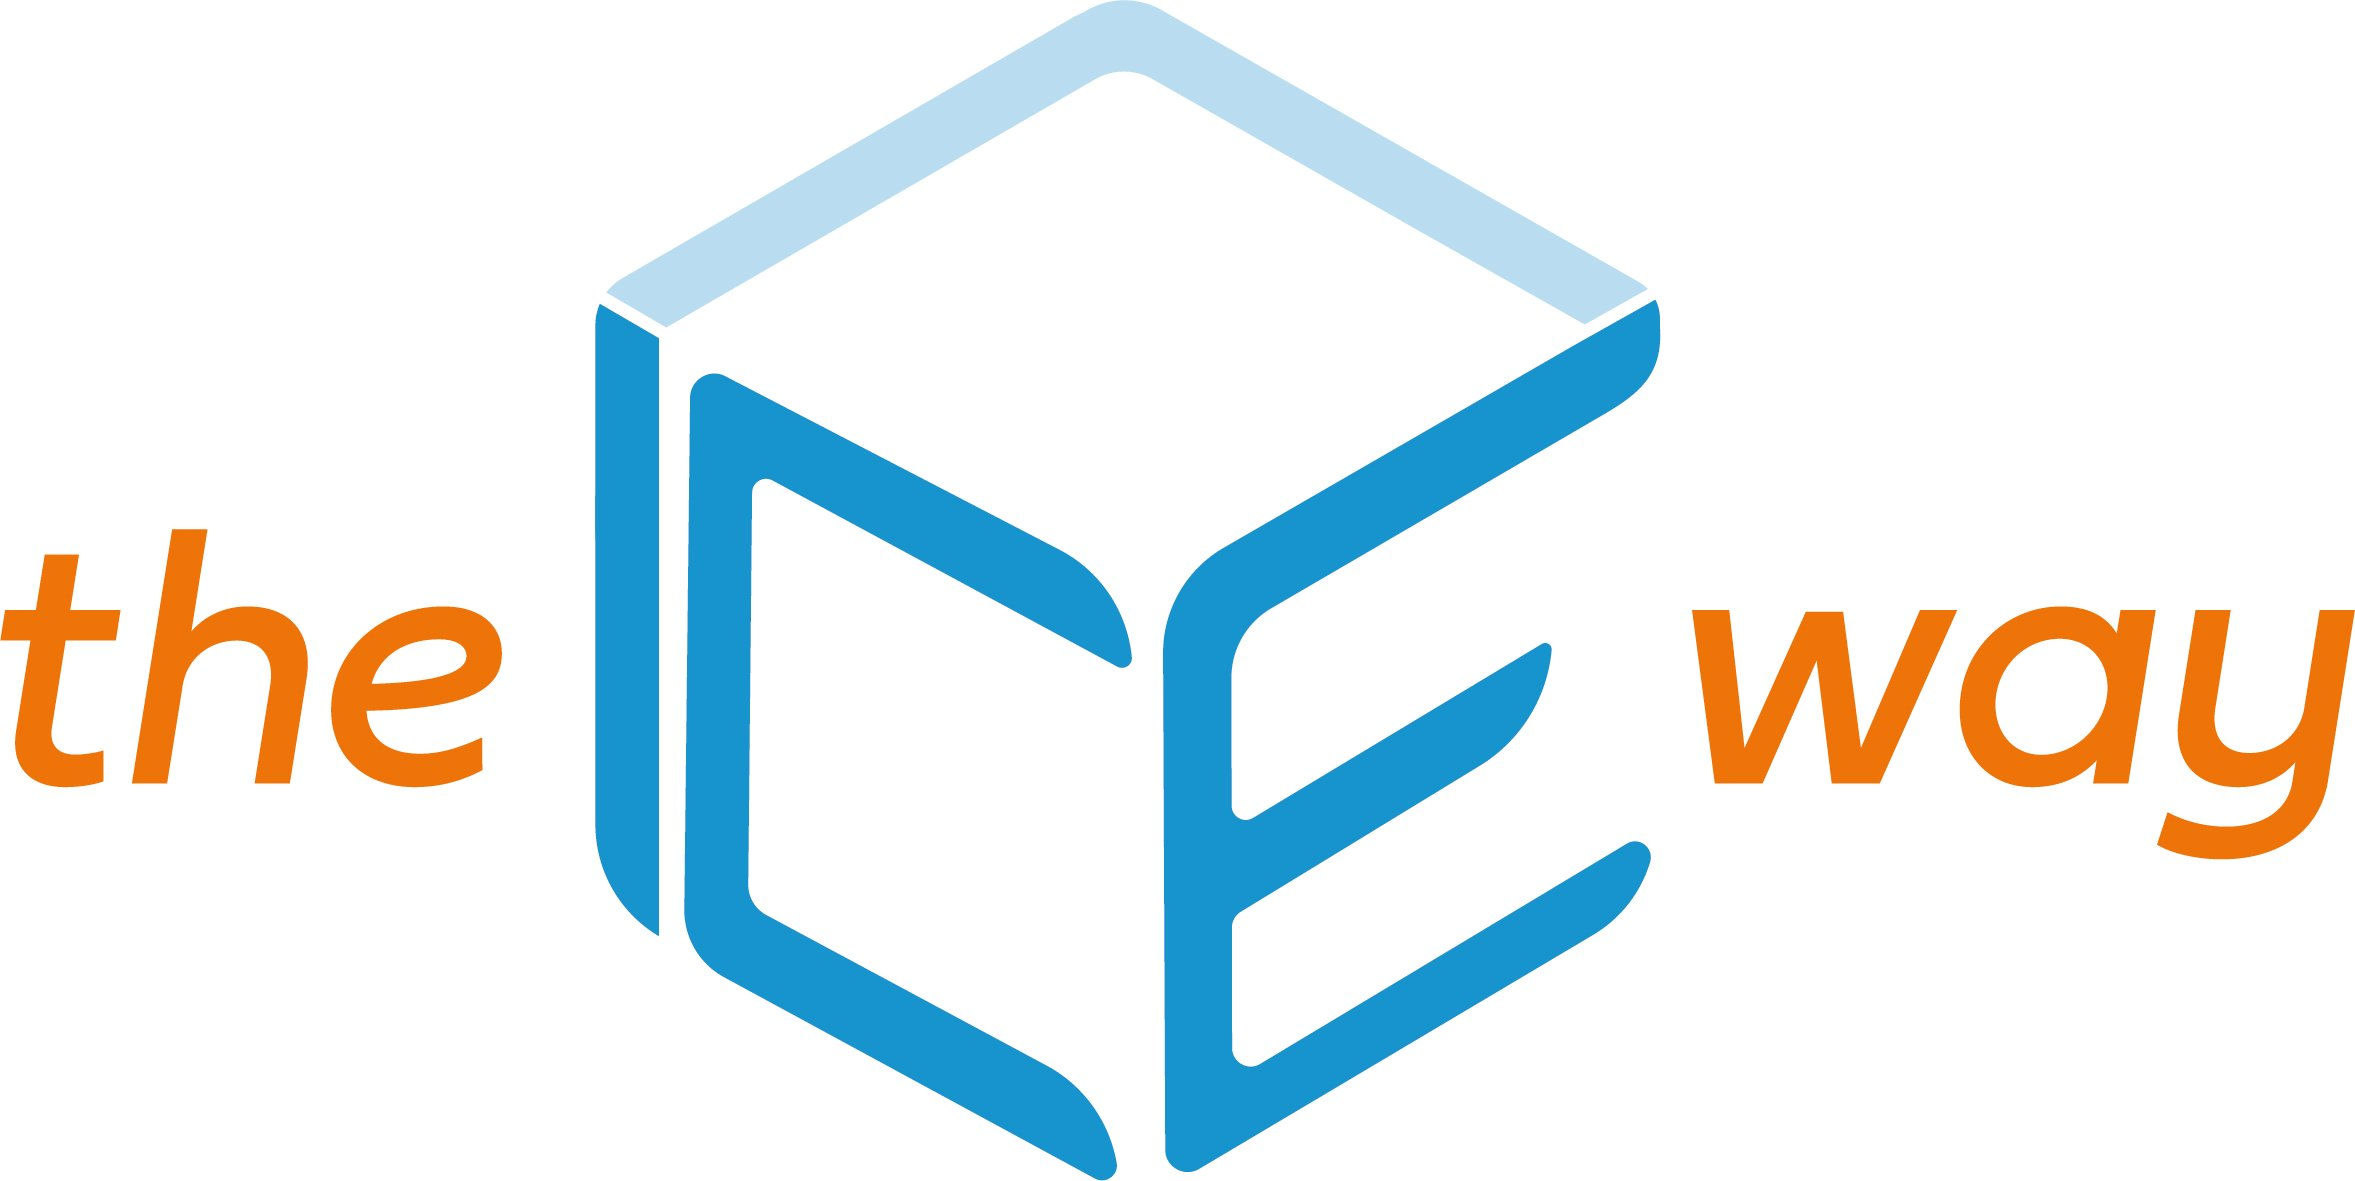 theICEway ecosystem: ICE, CRIBB Cyber Security & eTestware